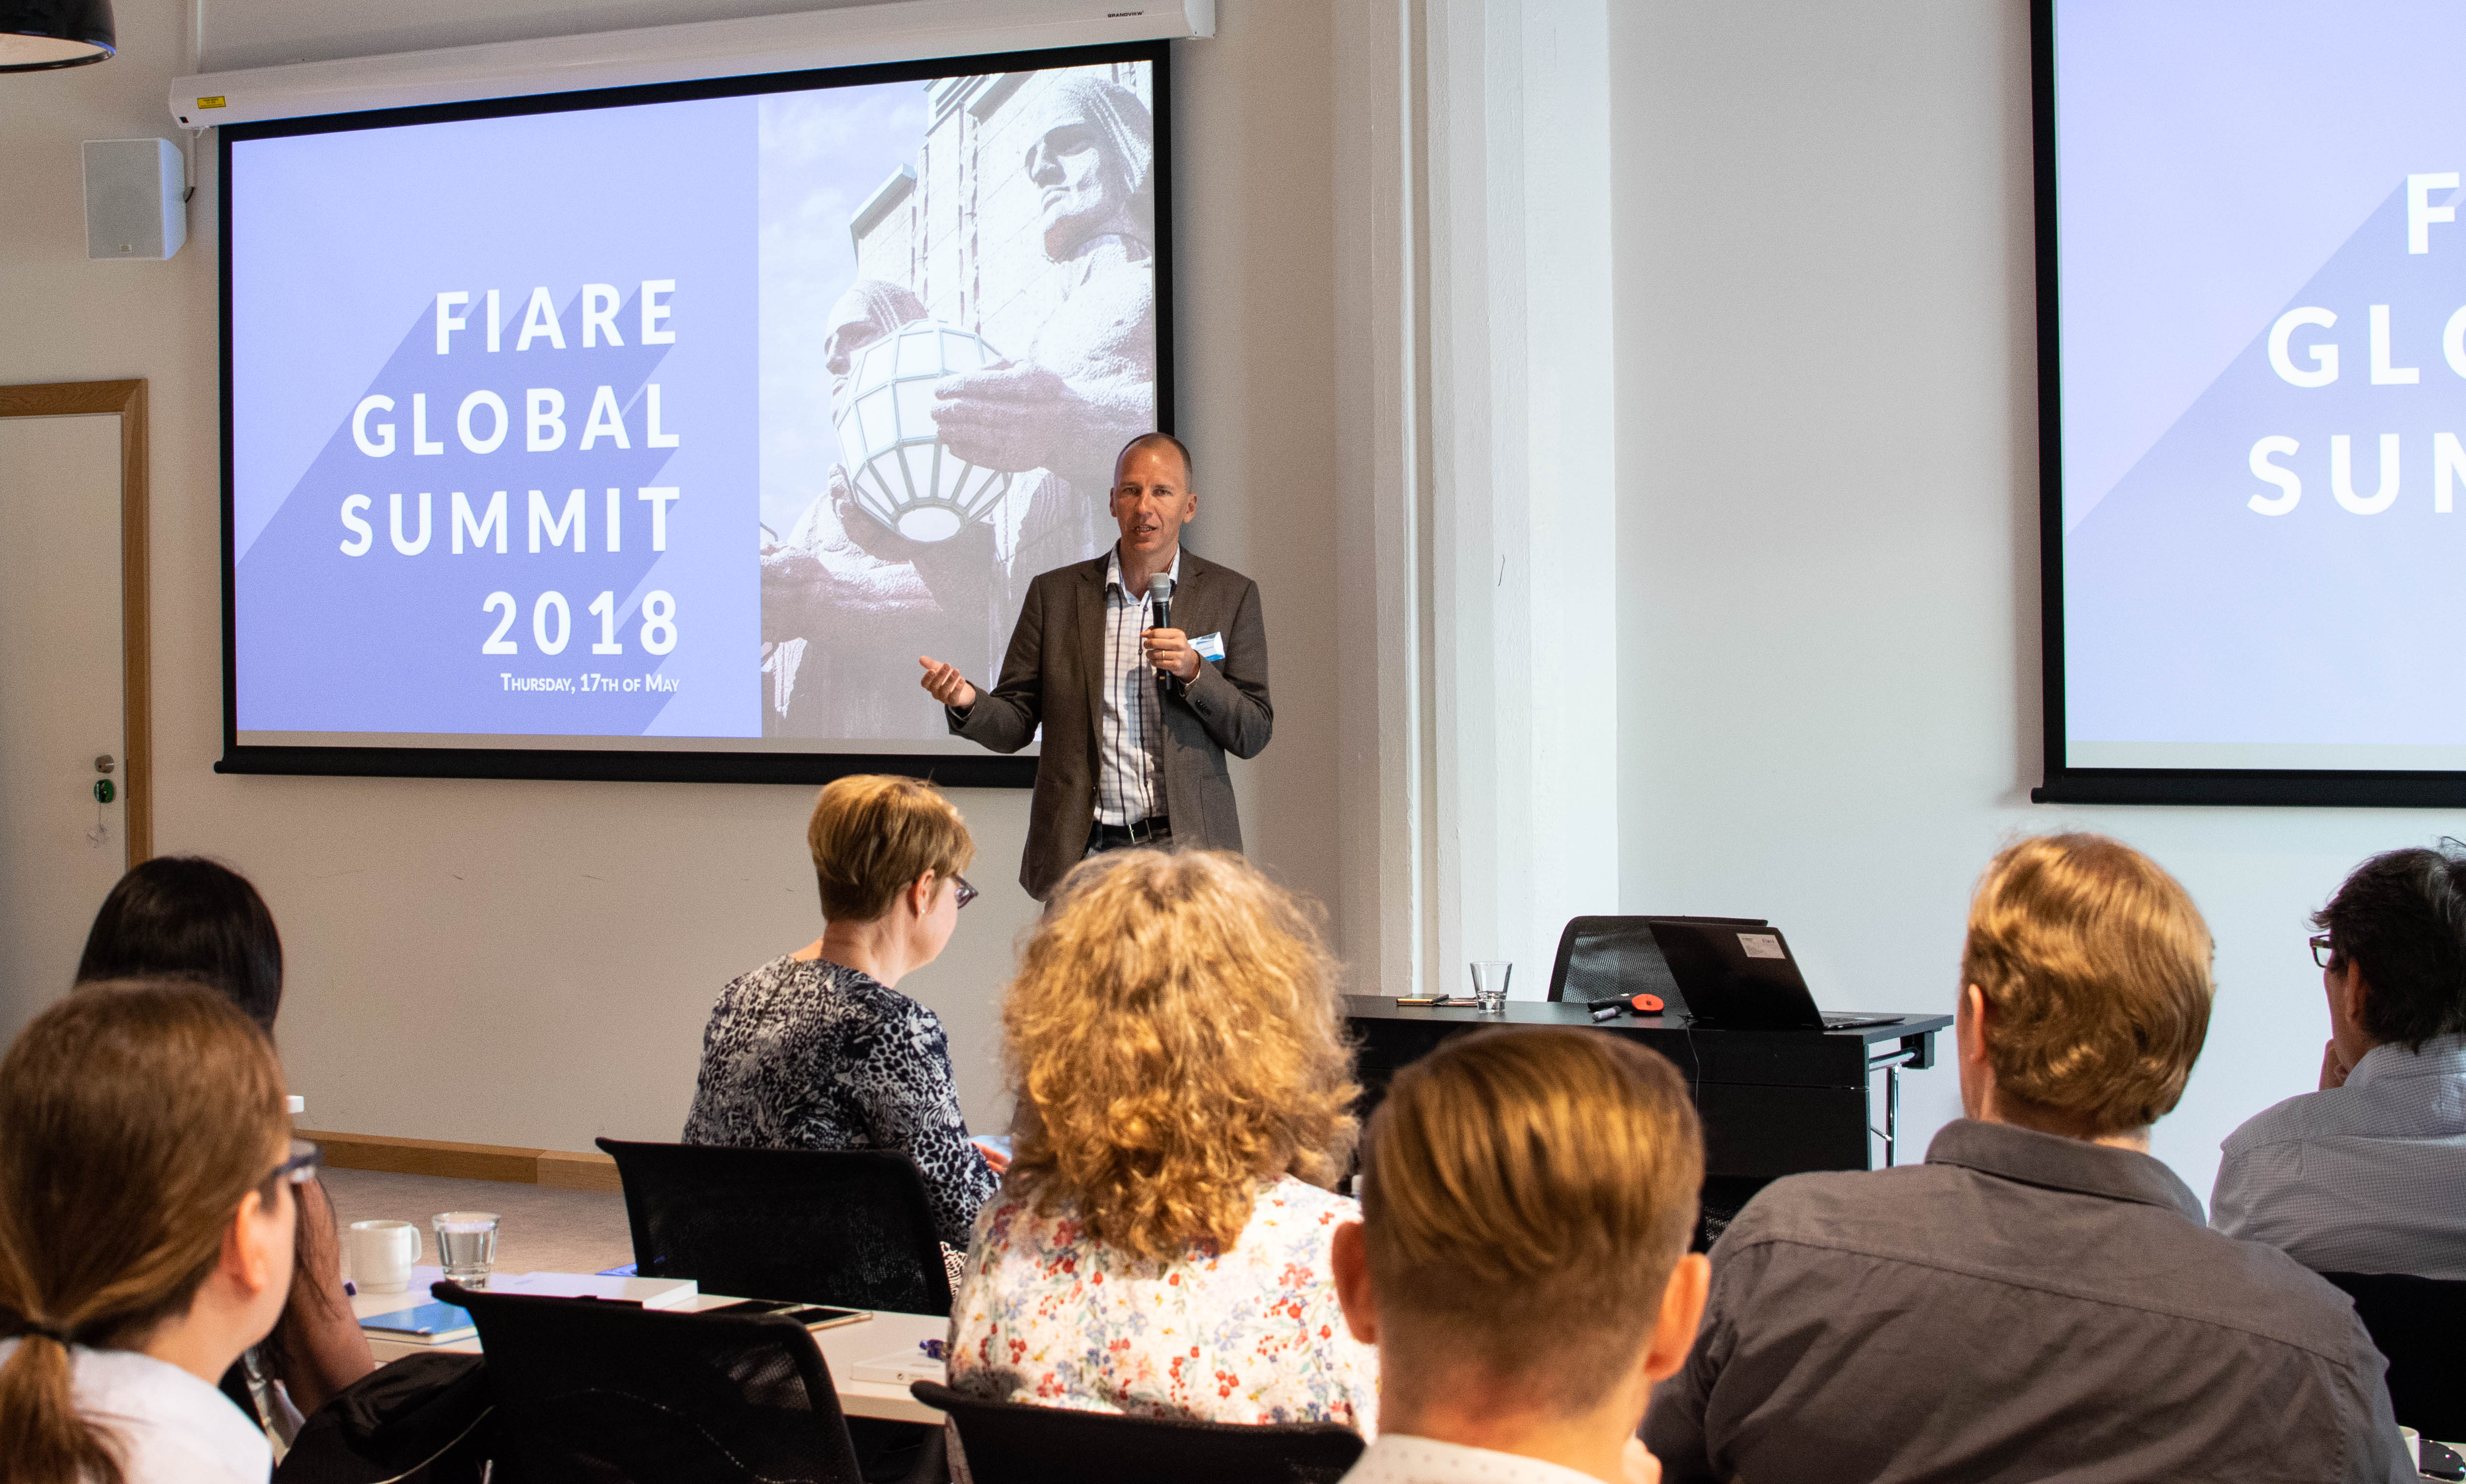 Fiare Global Summit 2018: Round-Up